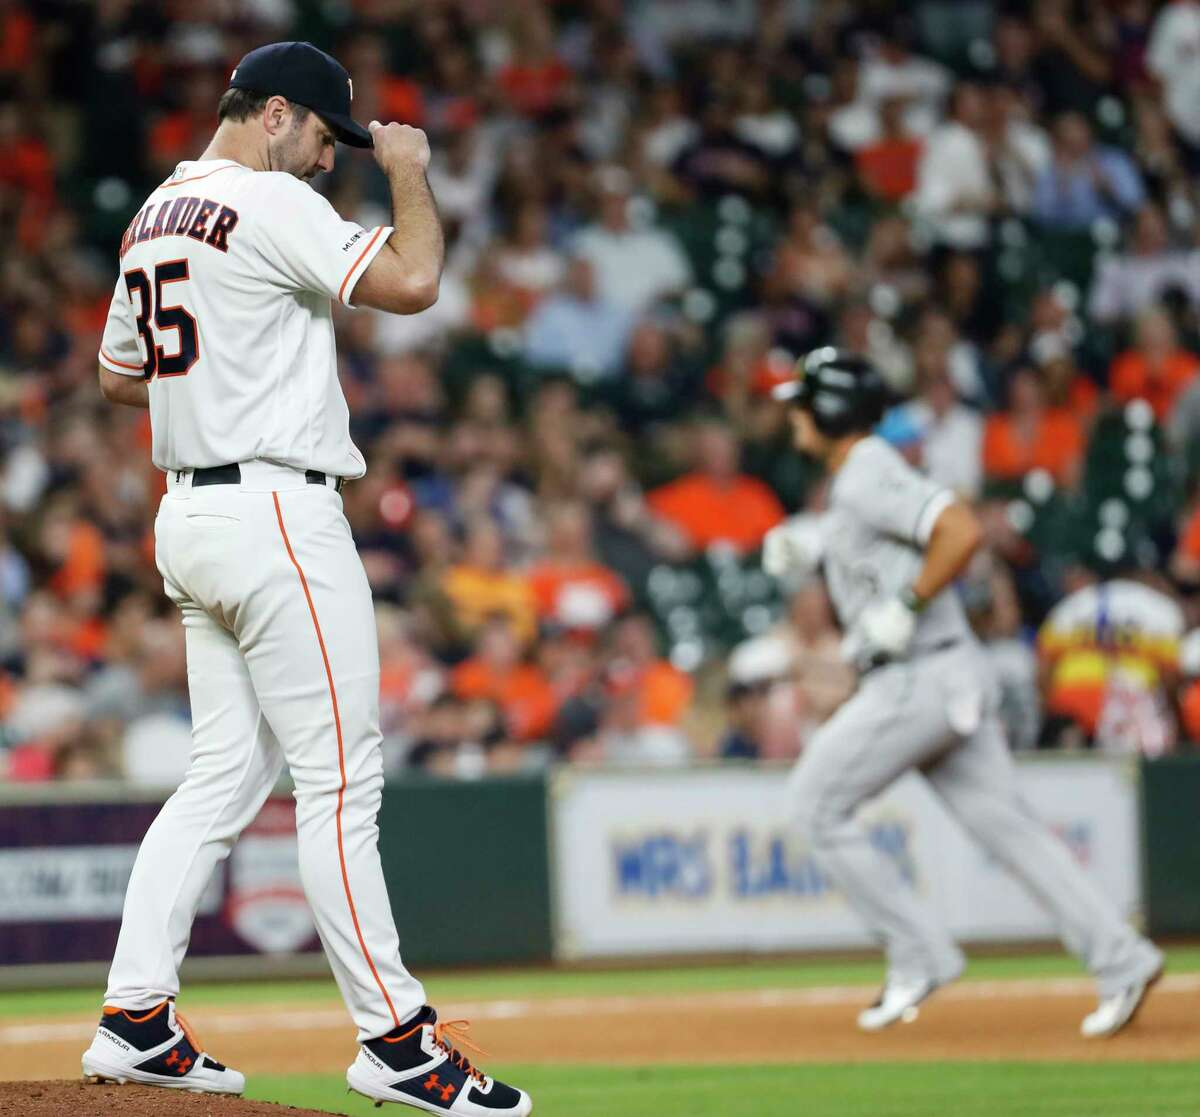 Houston Astros starting pitcher Justin Verlander walks back to the mound after giving up a solo home run to Chicago White Sox first baseman Jose Abreu, breaking up his no-hitter, during the seventh inning of a major league baseball game at Minute Maid Park on Tuesday, May 21, 2019, in Houston.